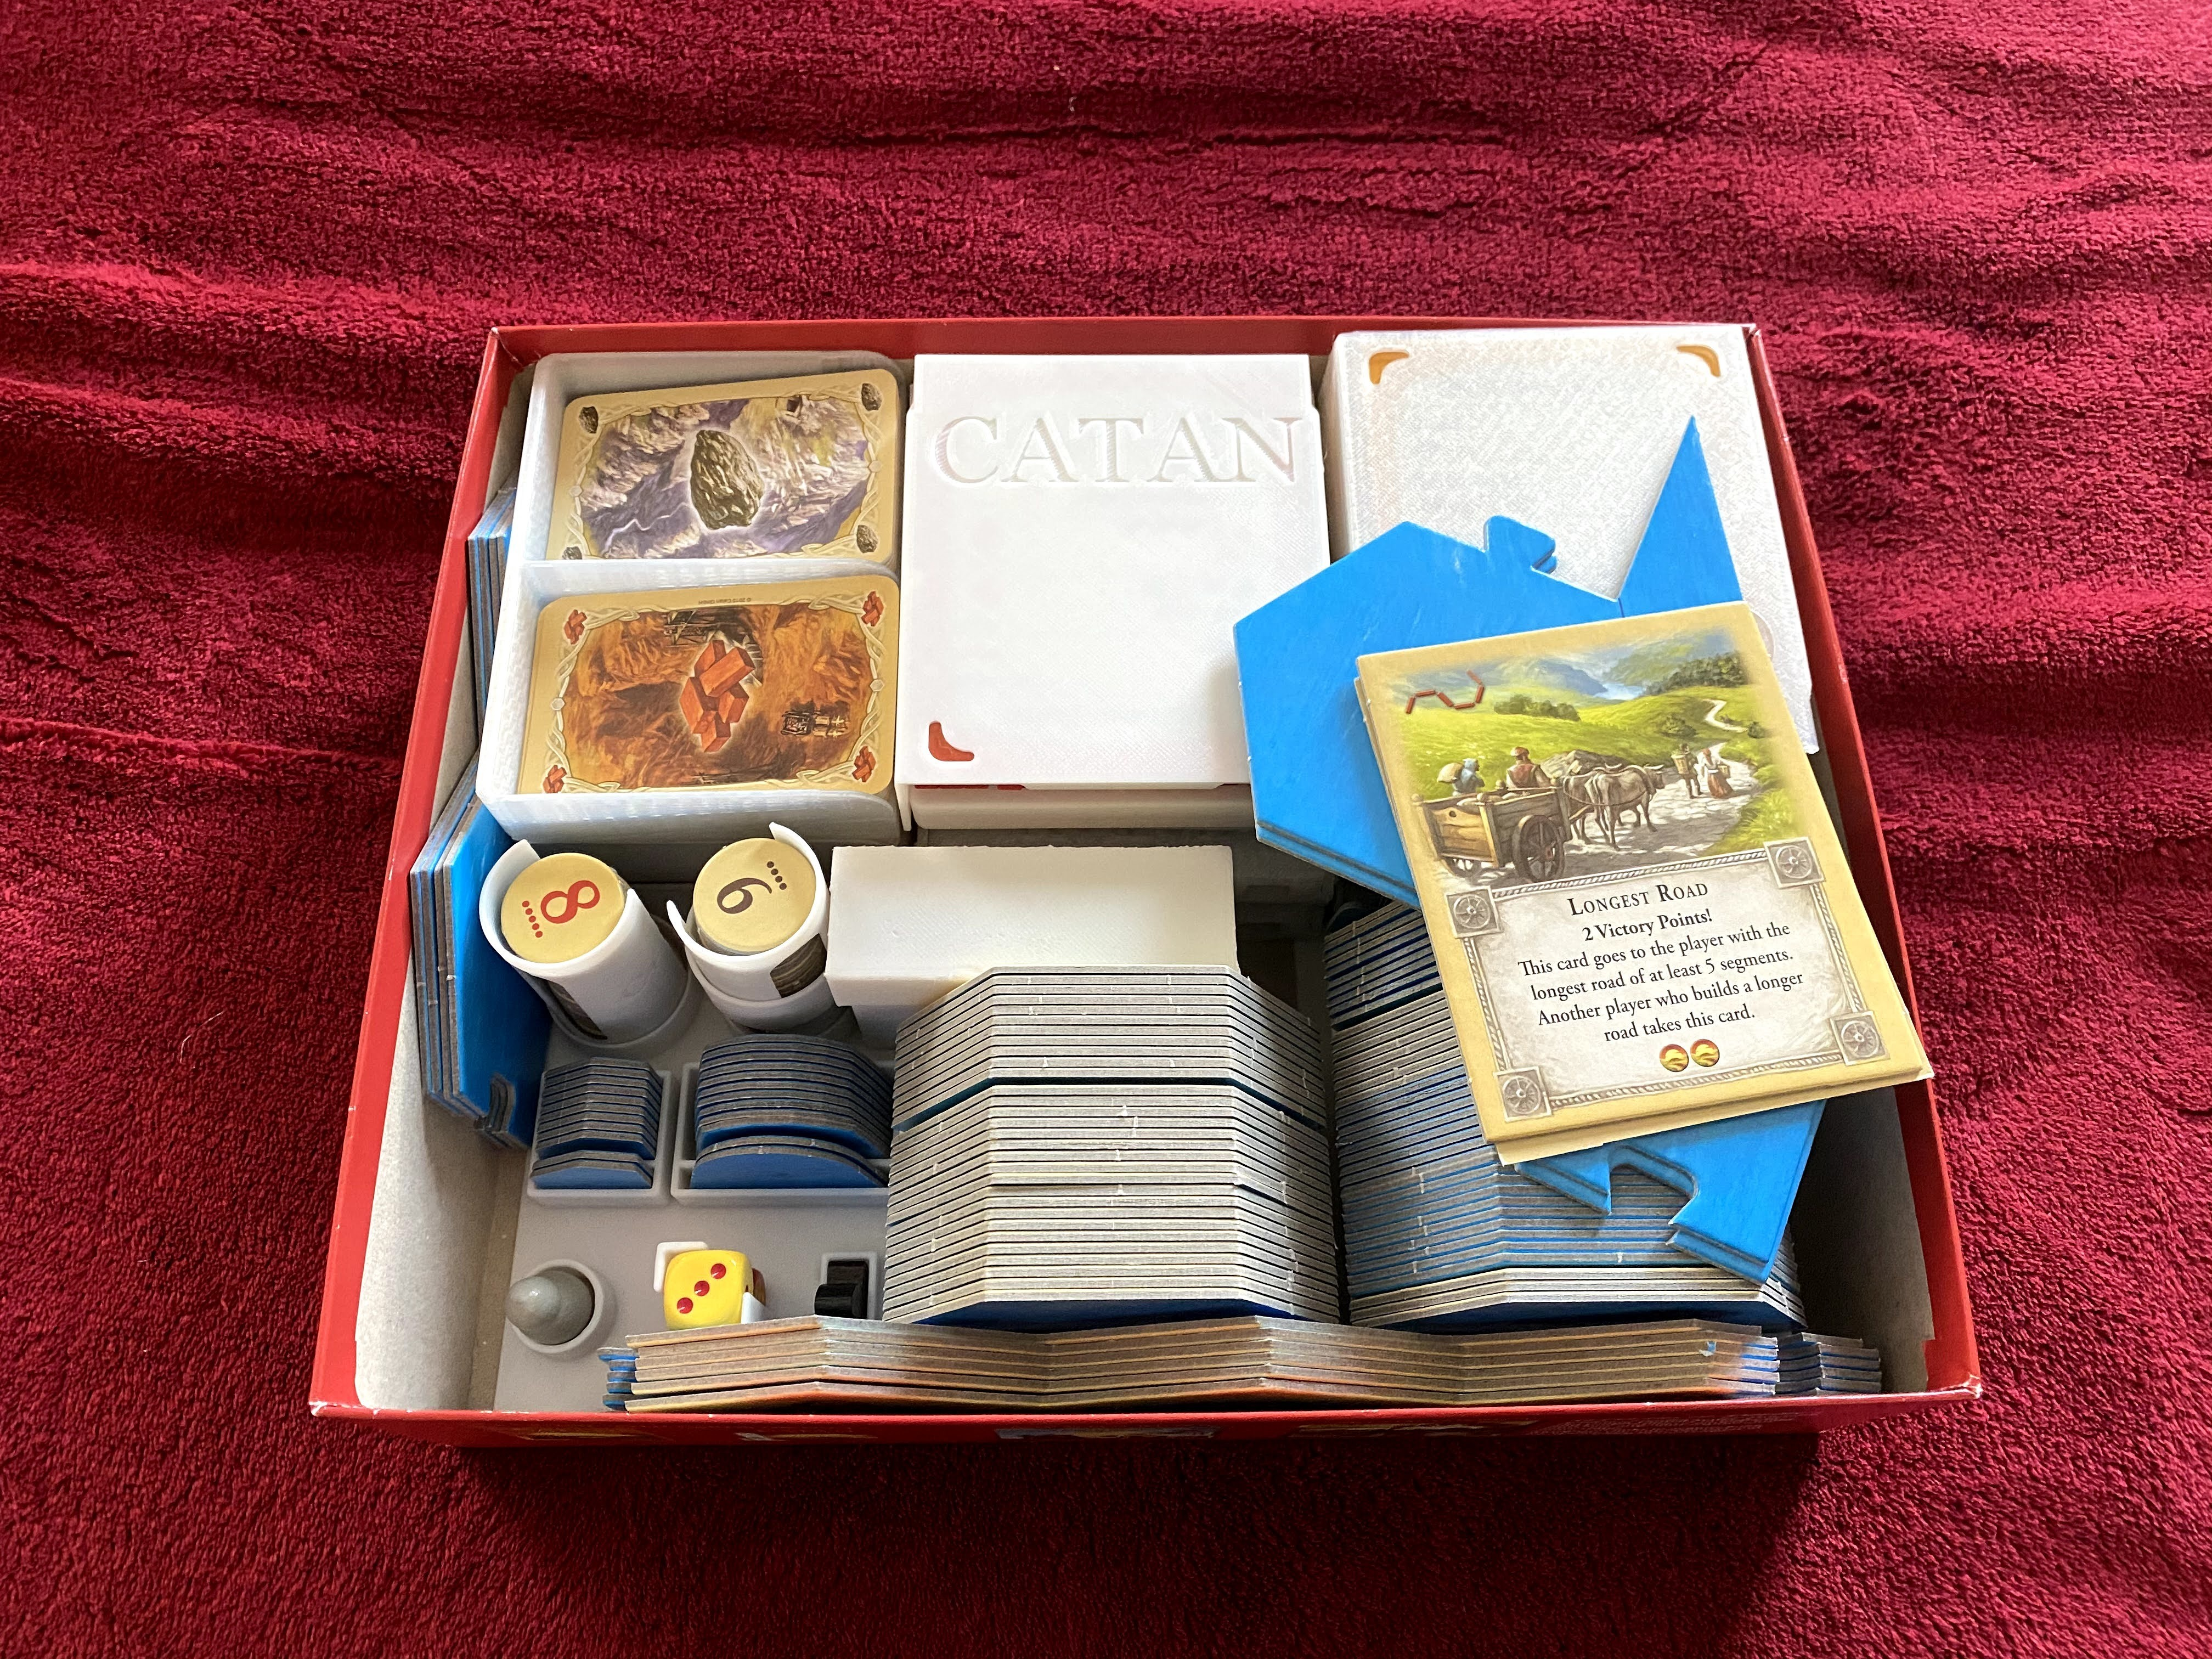 IMG_9627.jpg Download STL file Catan Organizer Insert for the Base Game, Seafarers, and Both 5-6 Player Extensions • 3D printer template, theneedfull